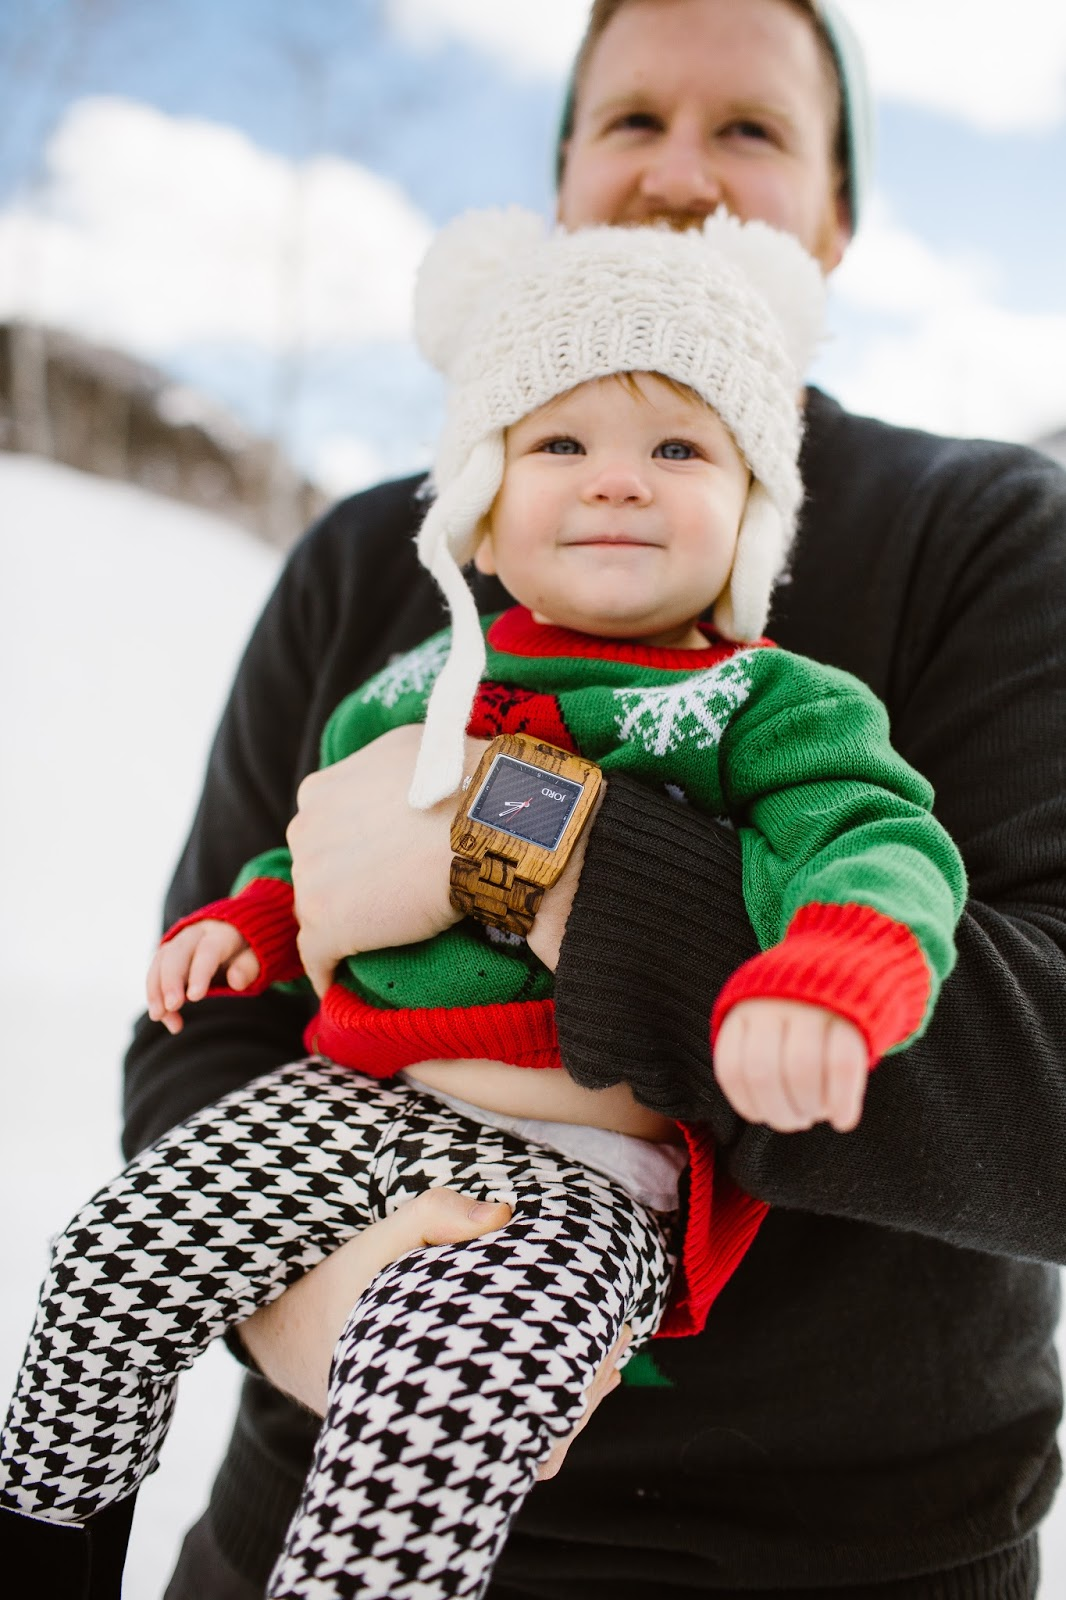 Jord Watch, Baby Christmas Sweater, Family Photos